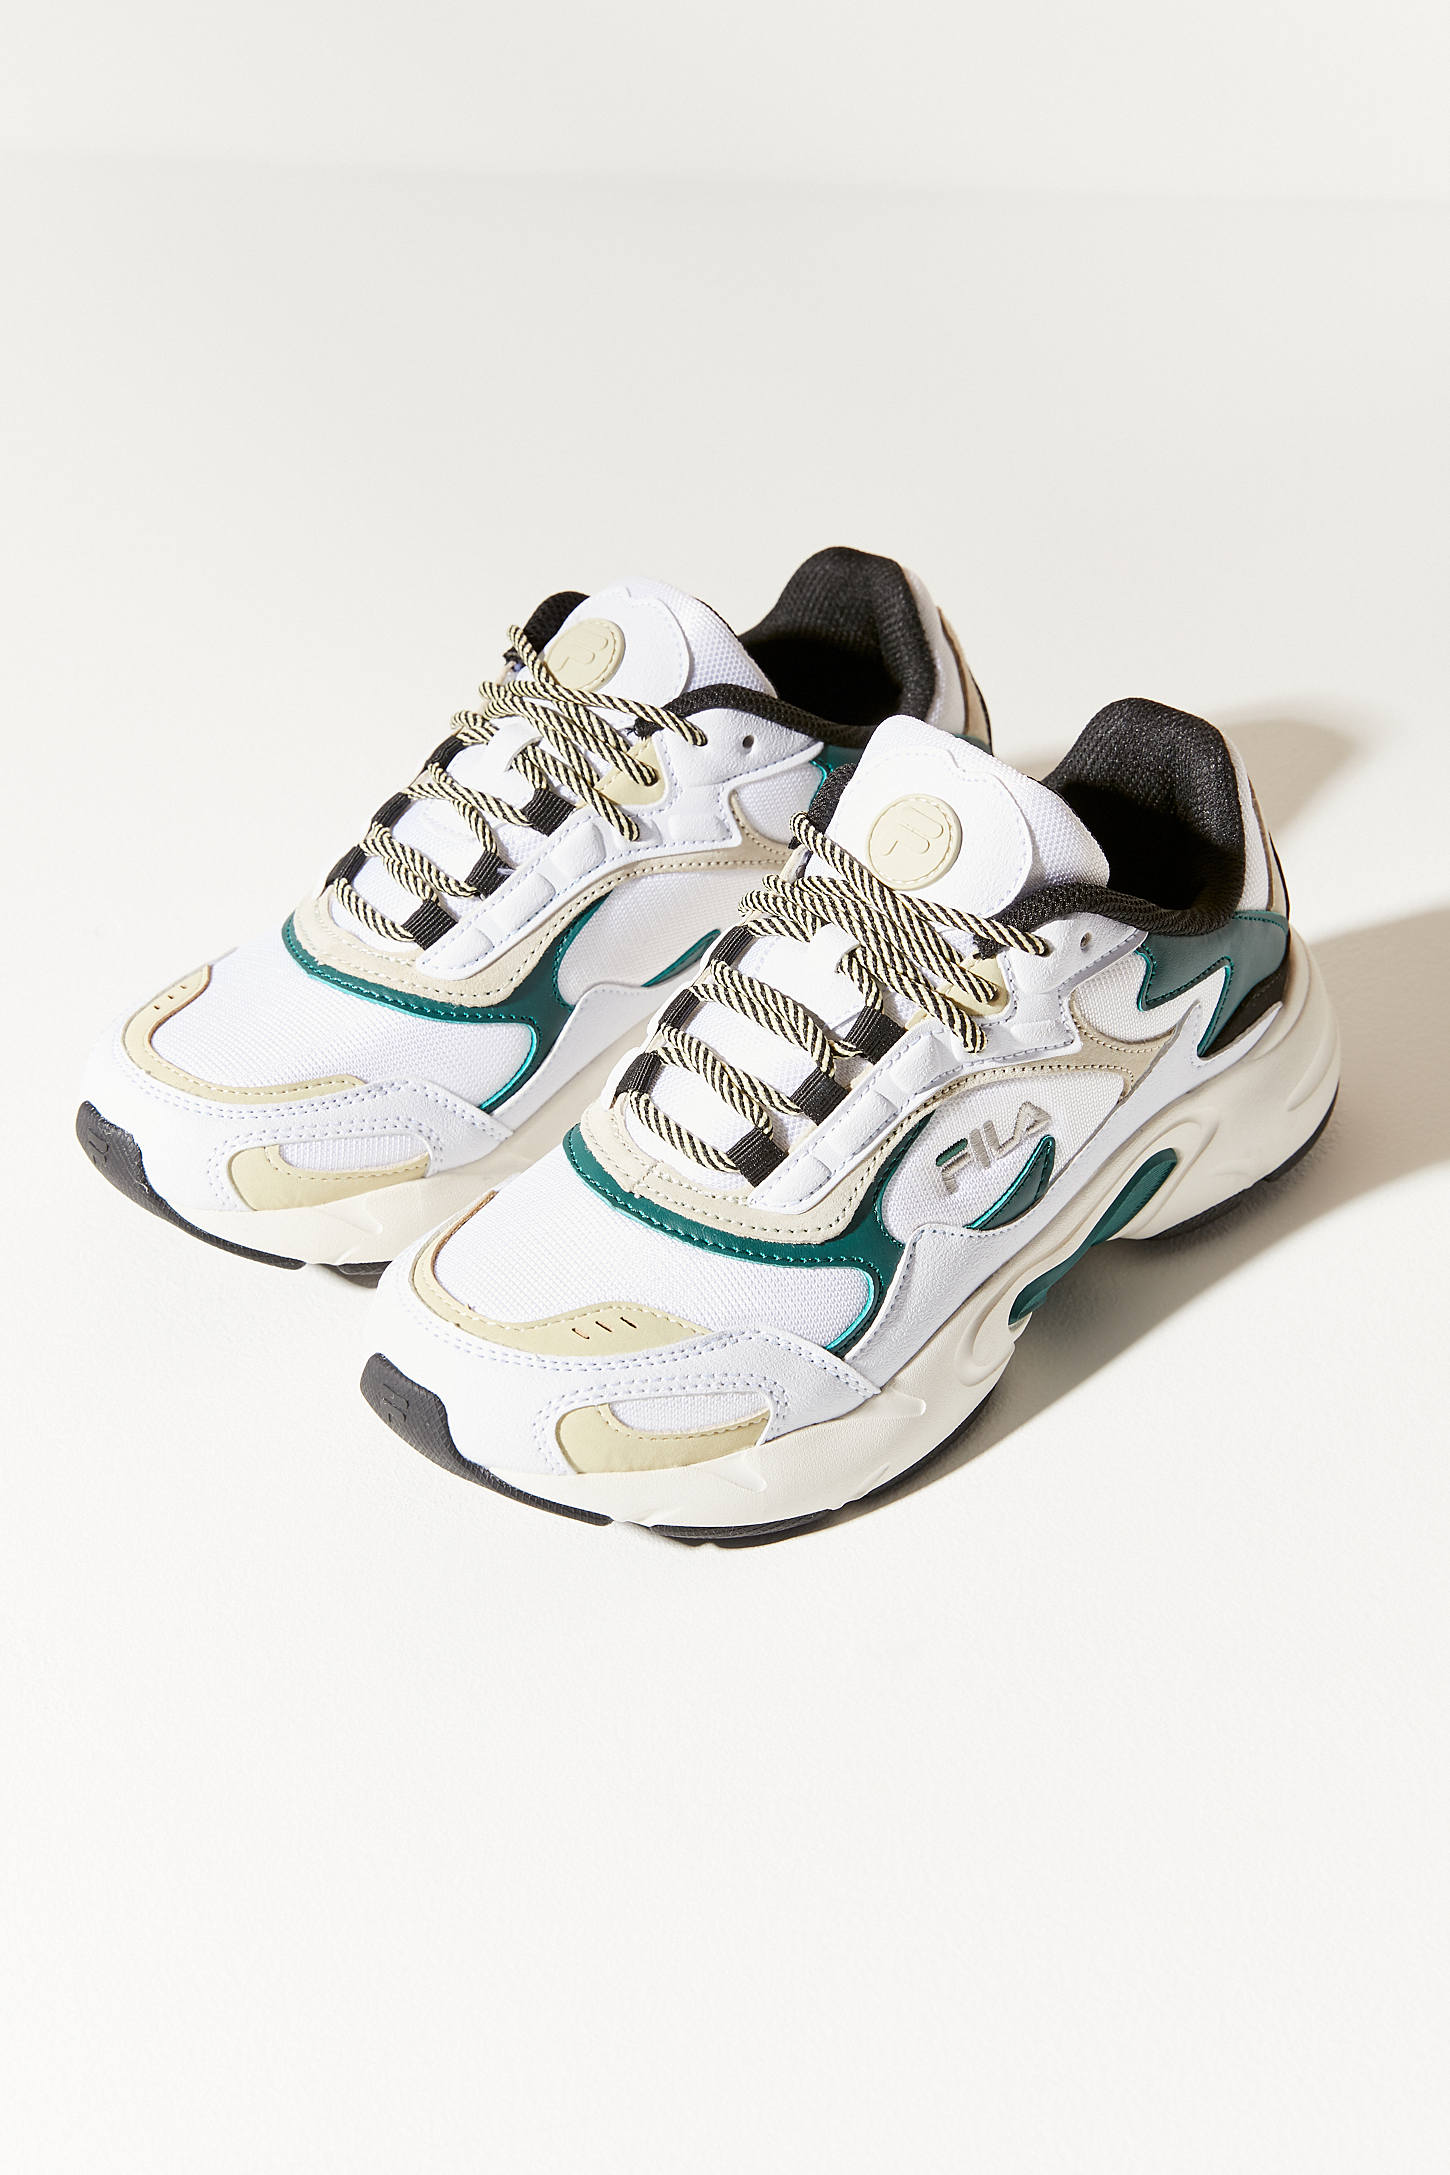 edea5c312 Coolest Ugly Dad Sneakers For Women - 2019 Trends